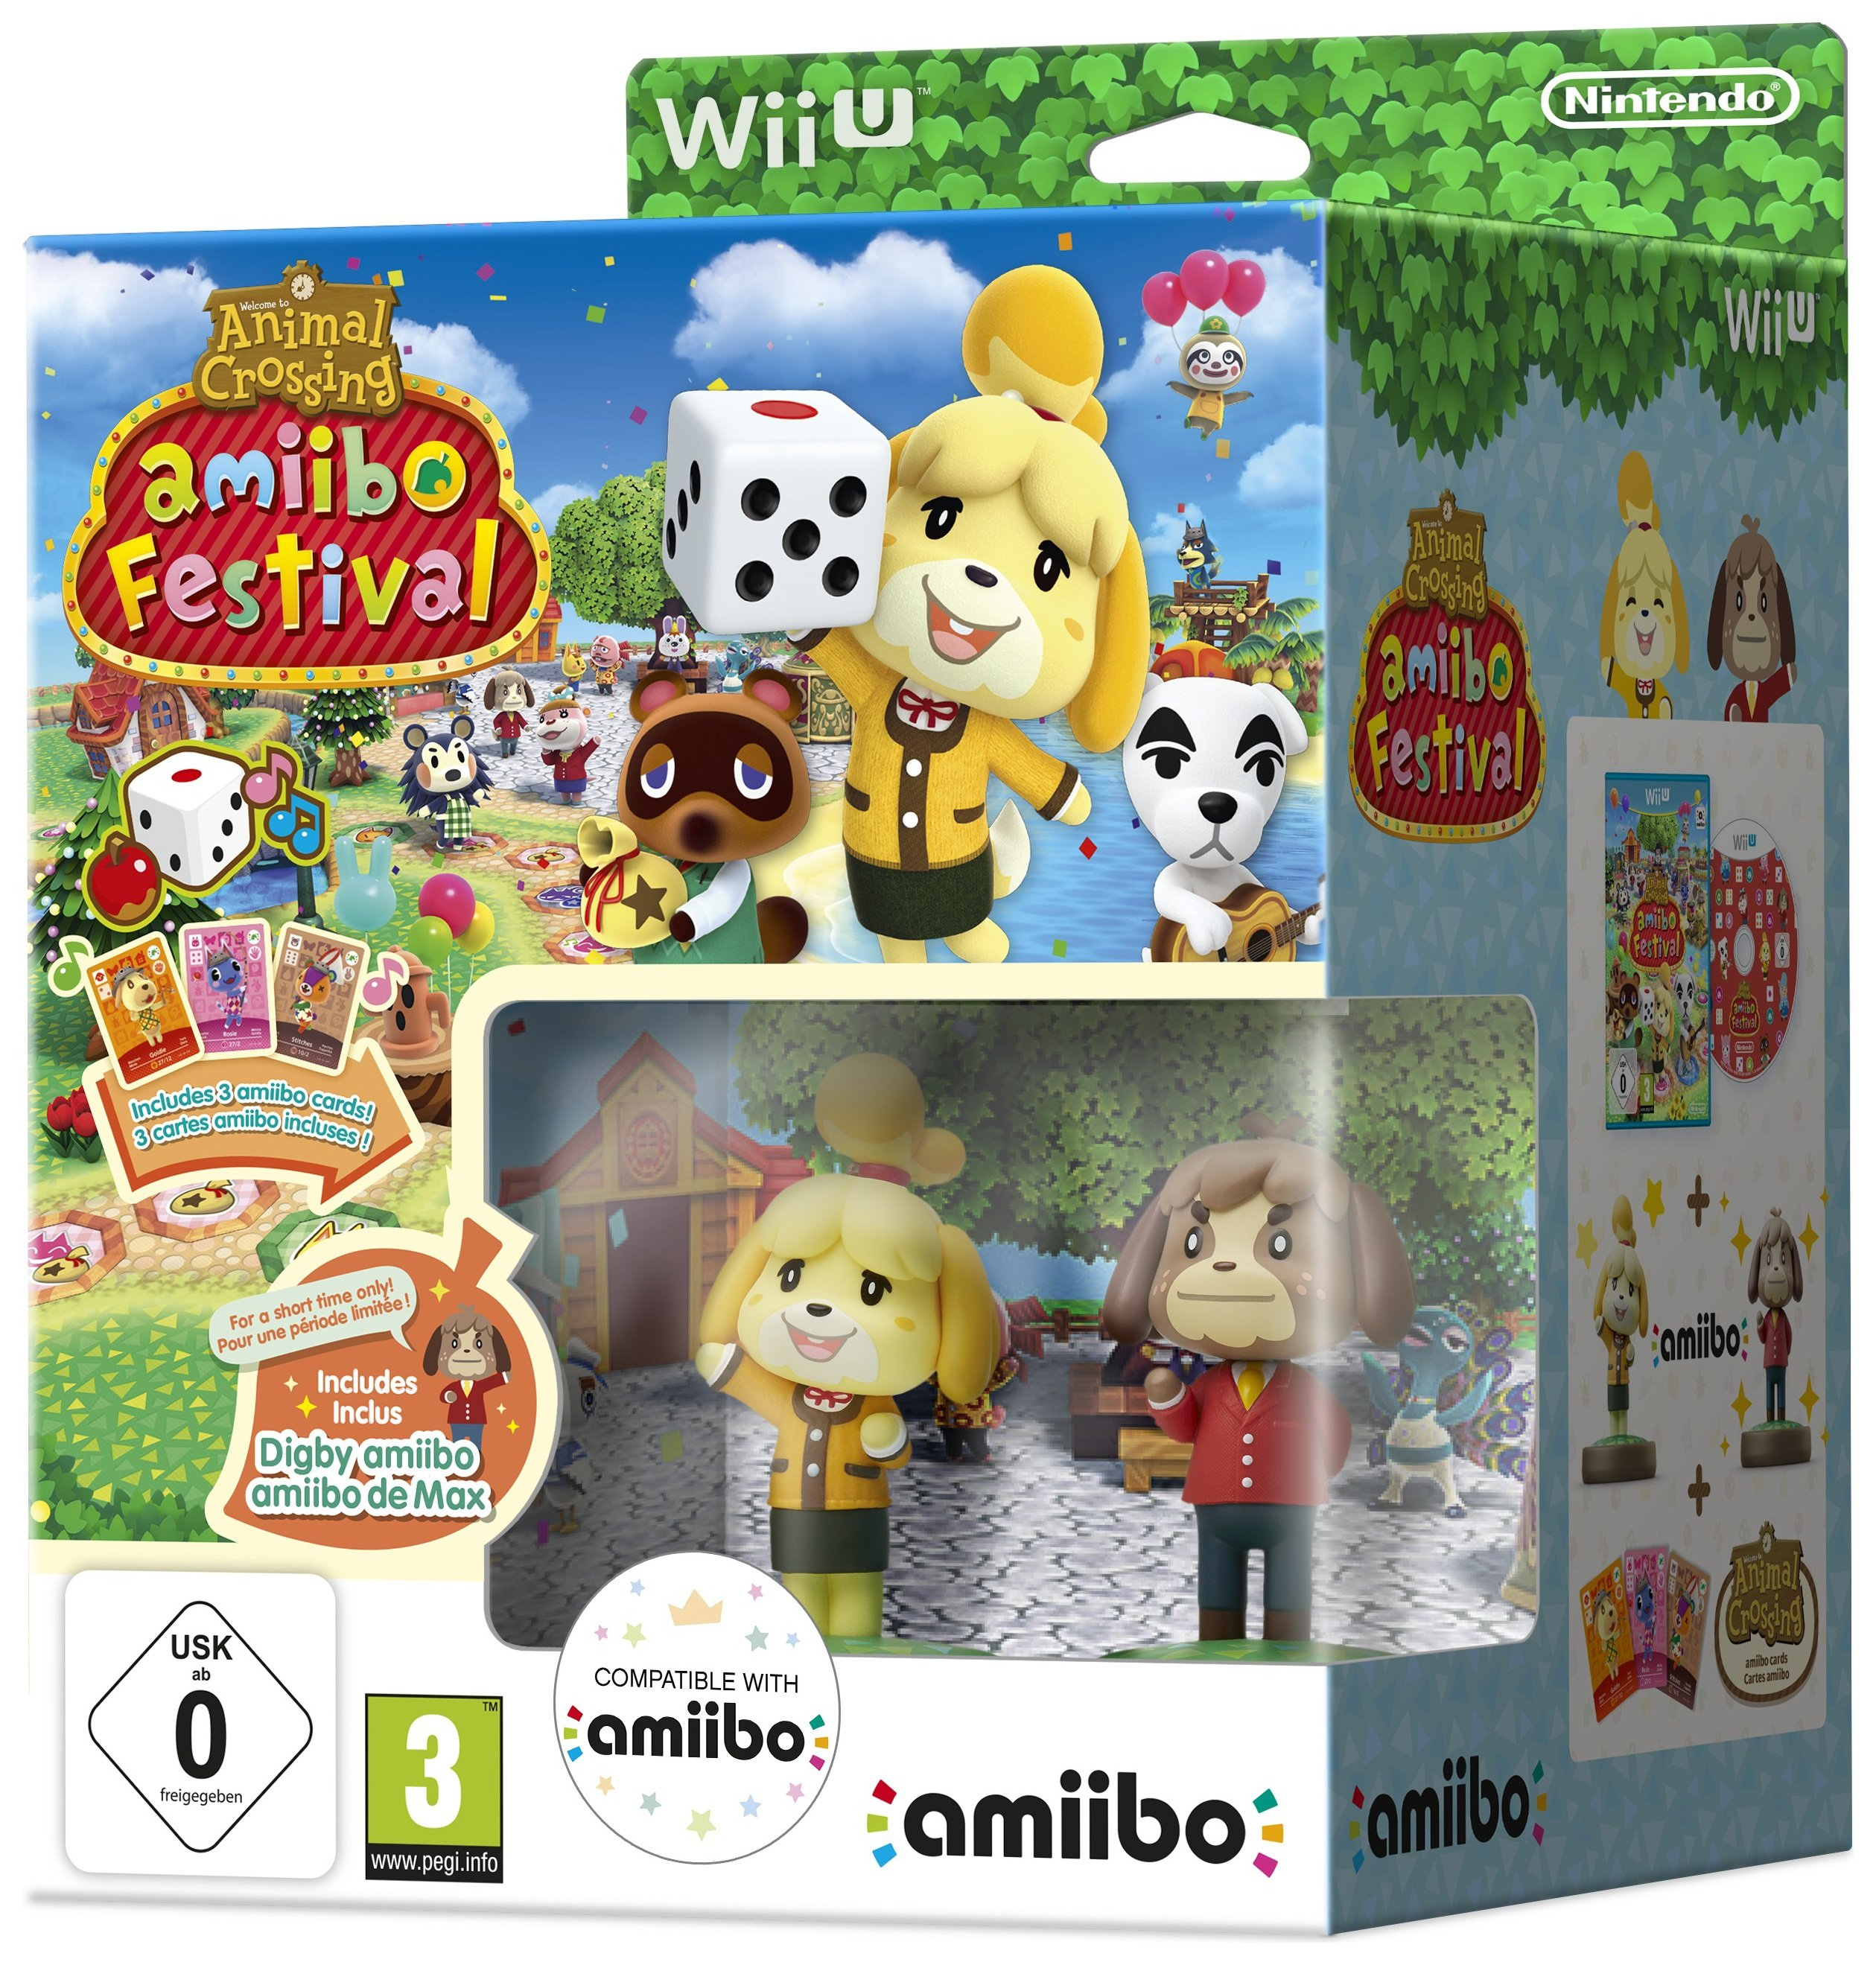 Image of Animal Crossing - Amiibo Festival - Wii U - Game